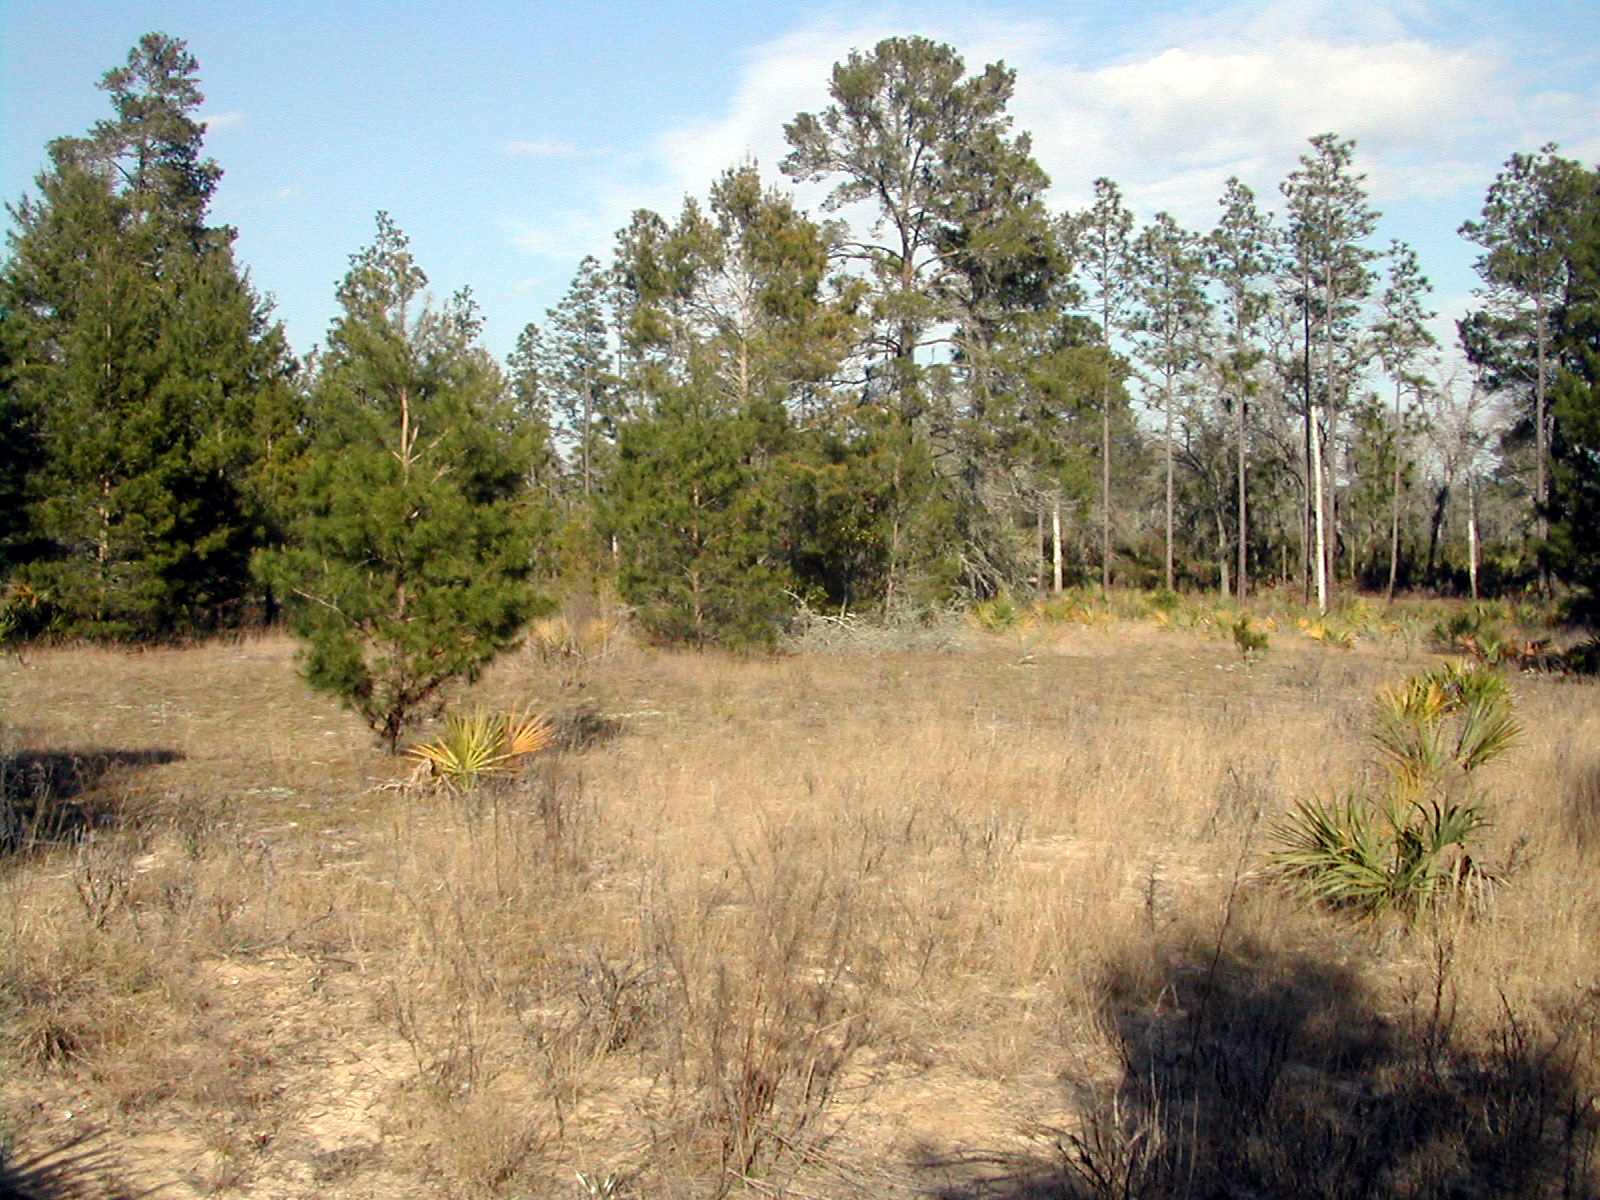 One of the Long Family homesites